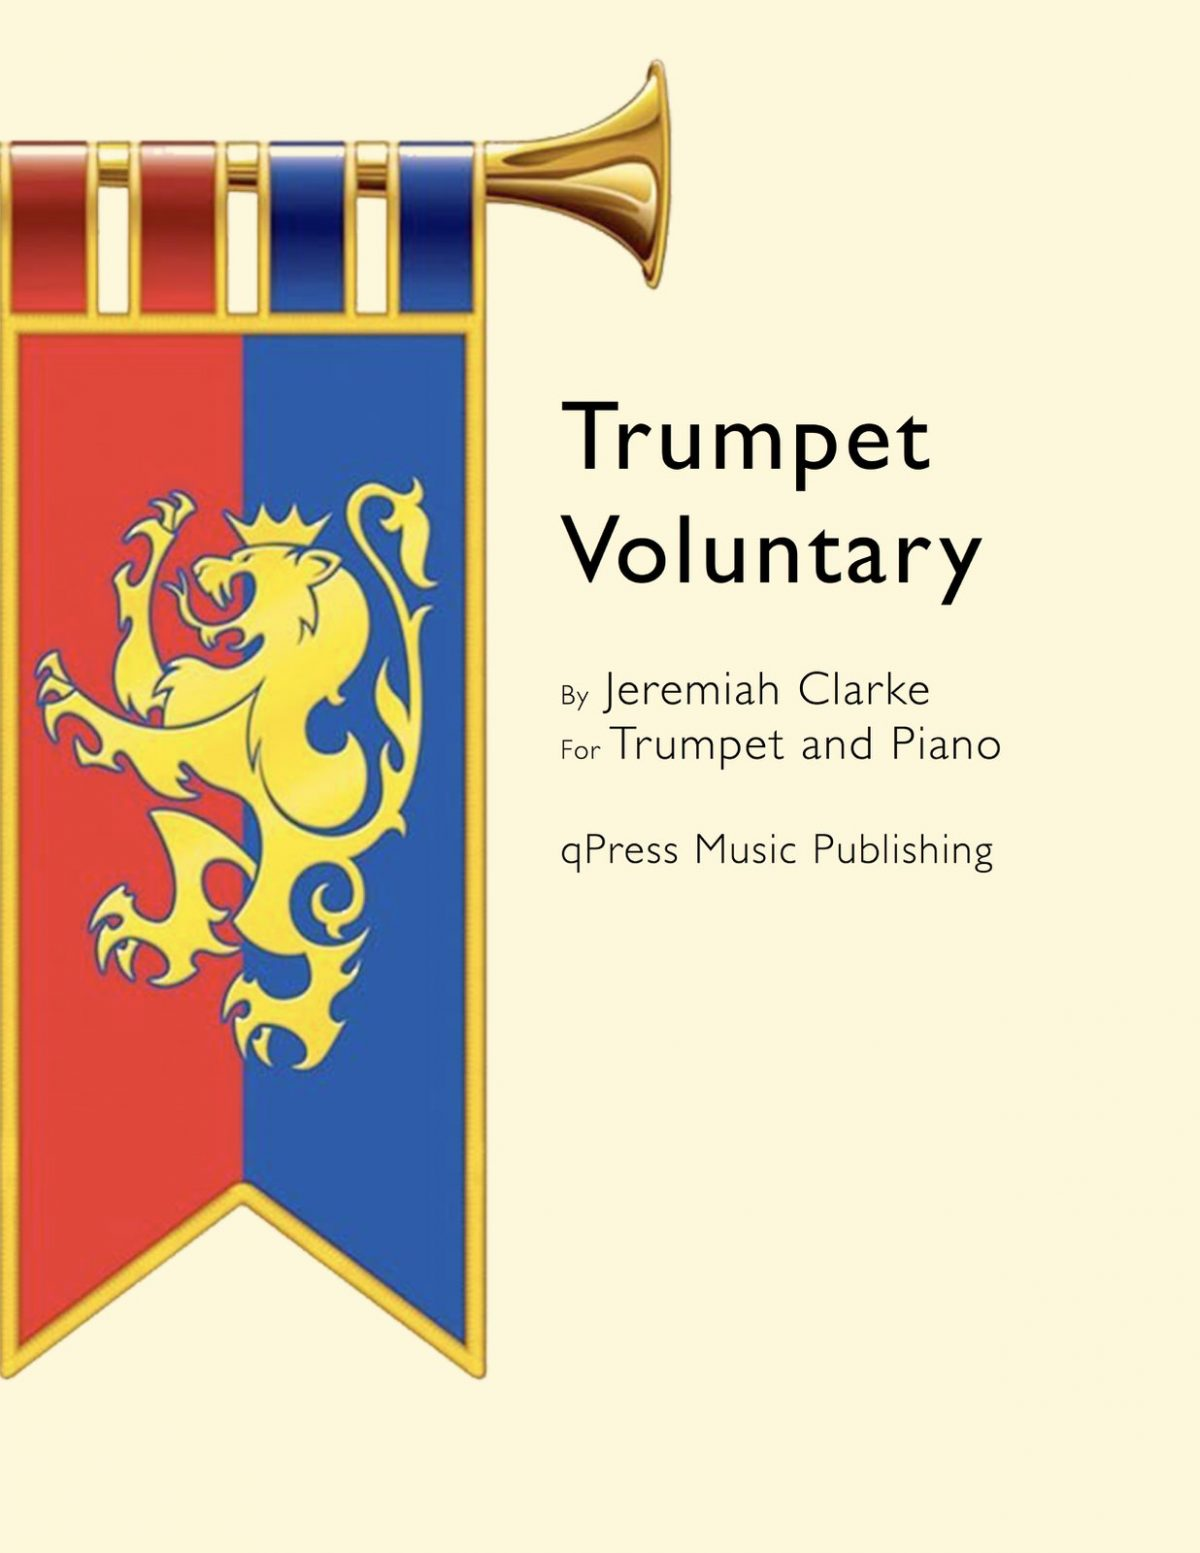 Clarke, Jeremiah, Trumpet Voluntary (Part and Score)-p1